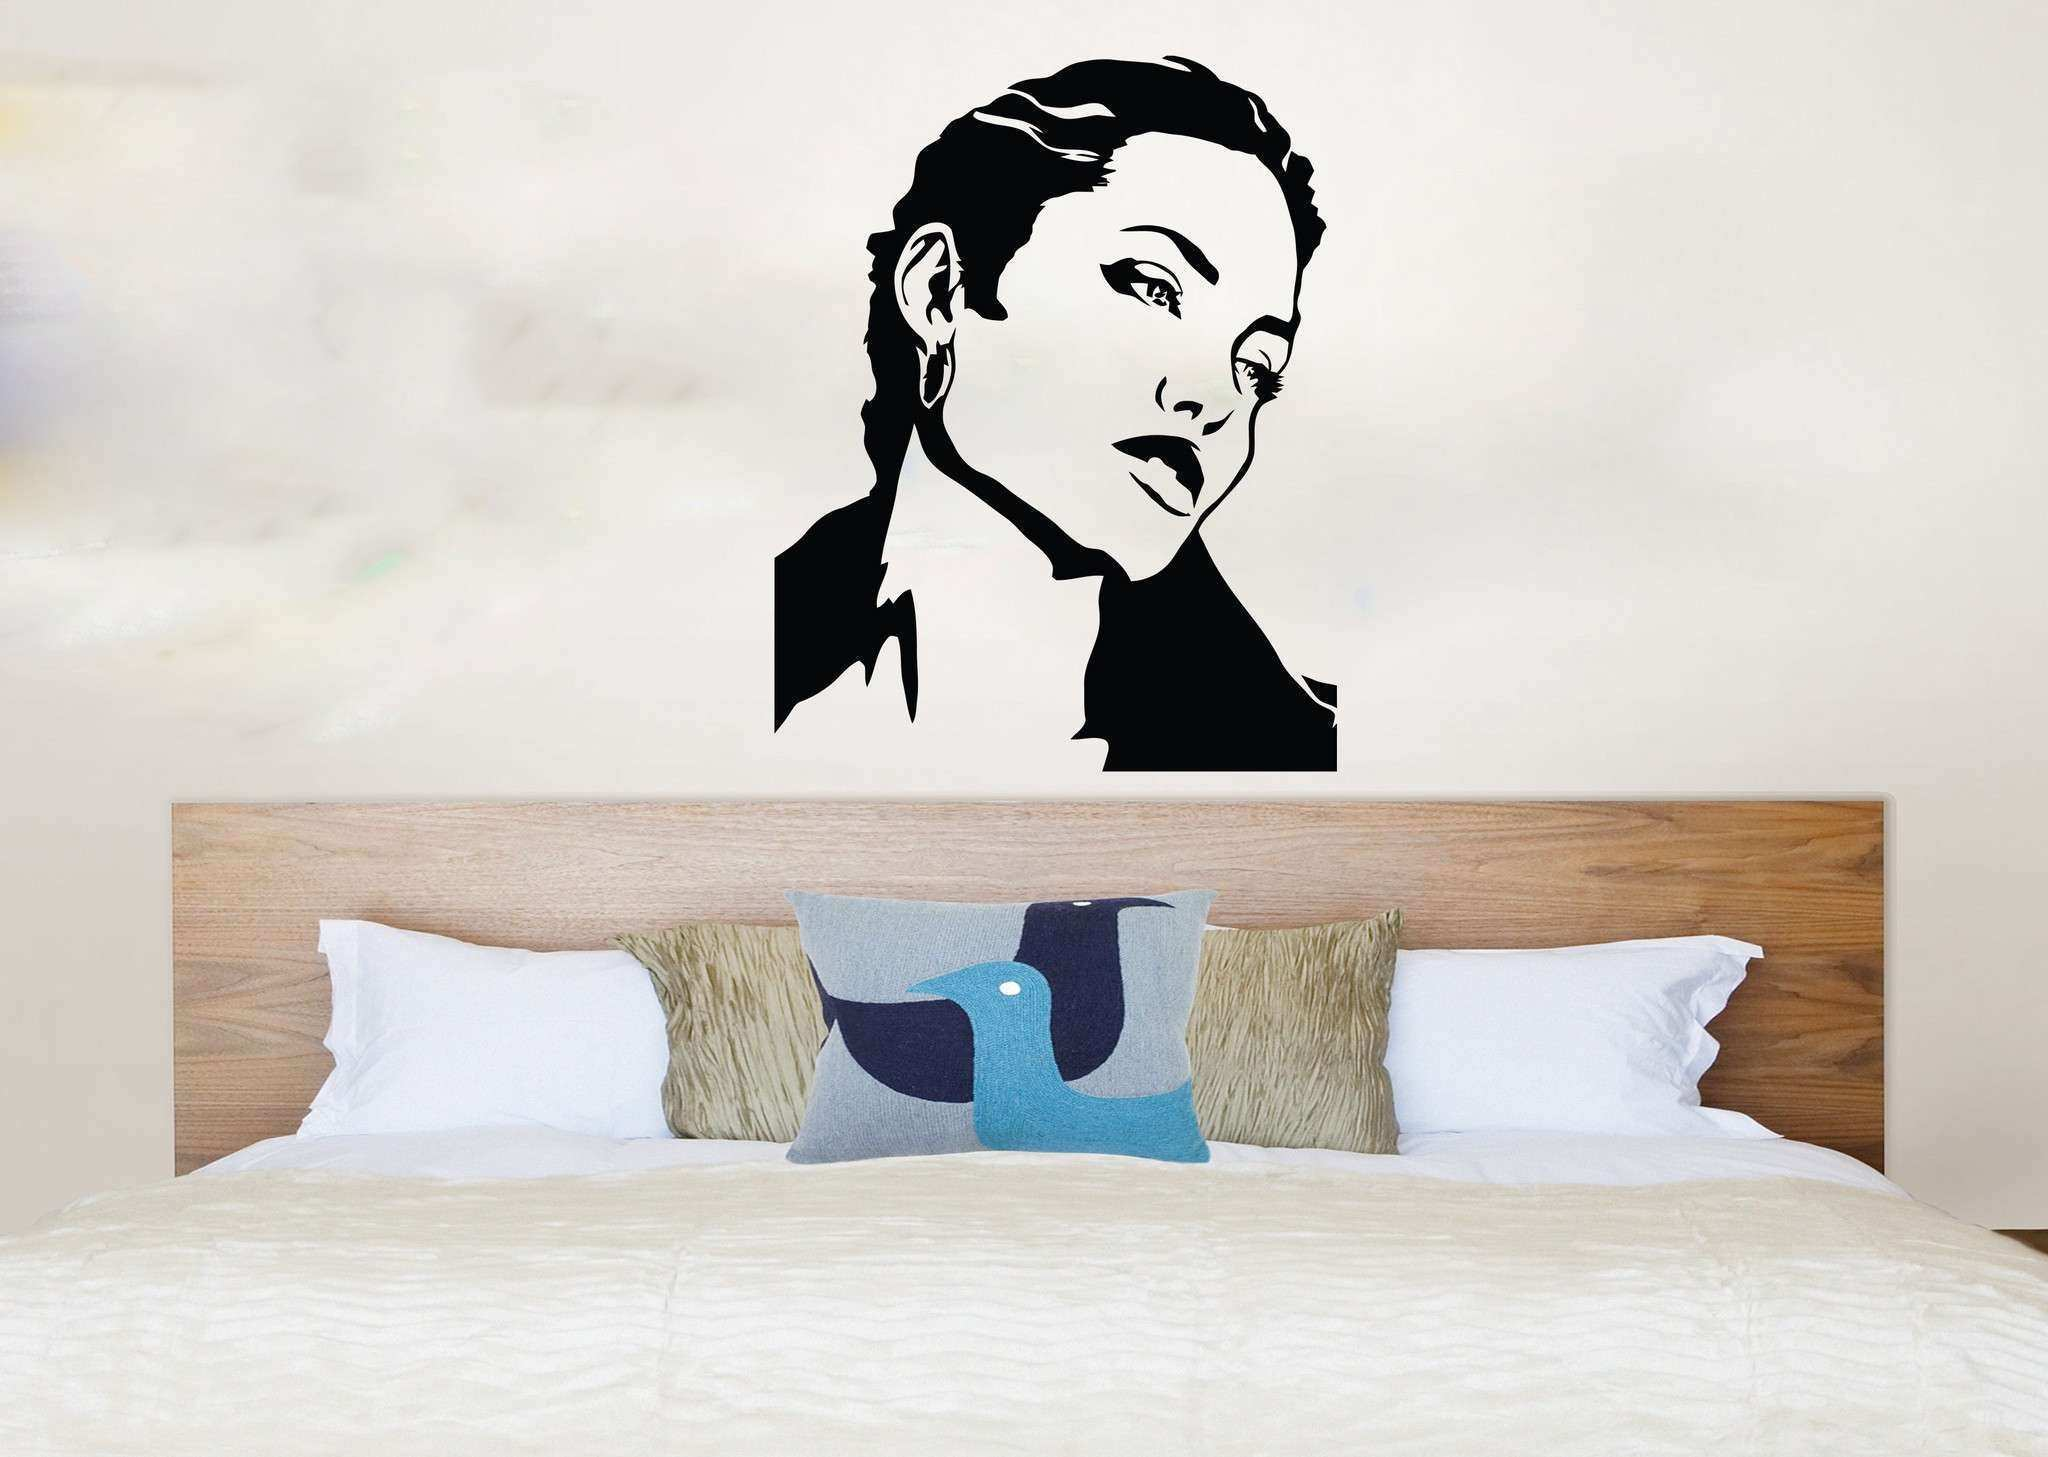 Fashion Wall Decor New Music Bedroom Decor Elegant Wall Decals For